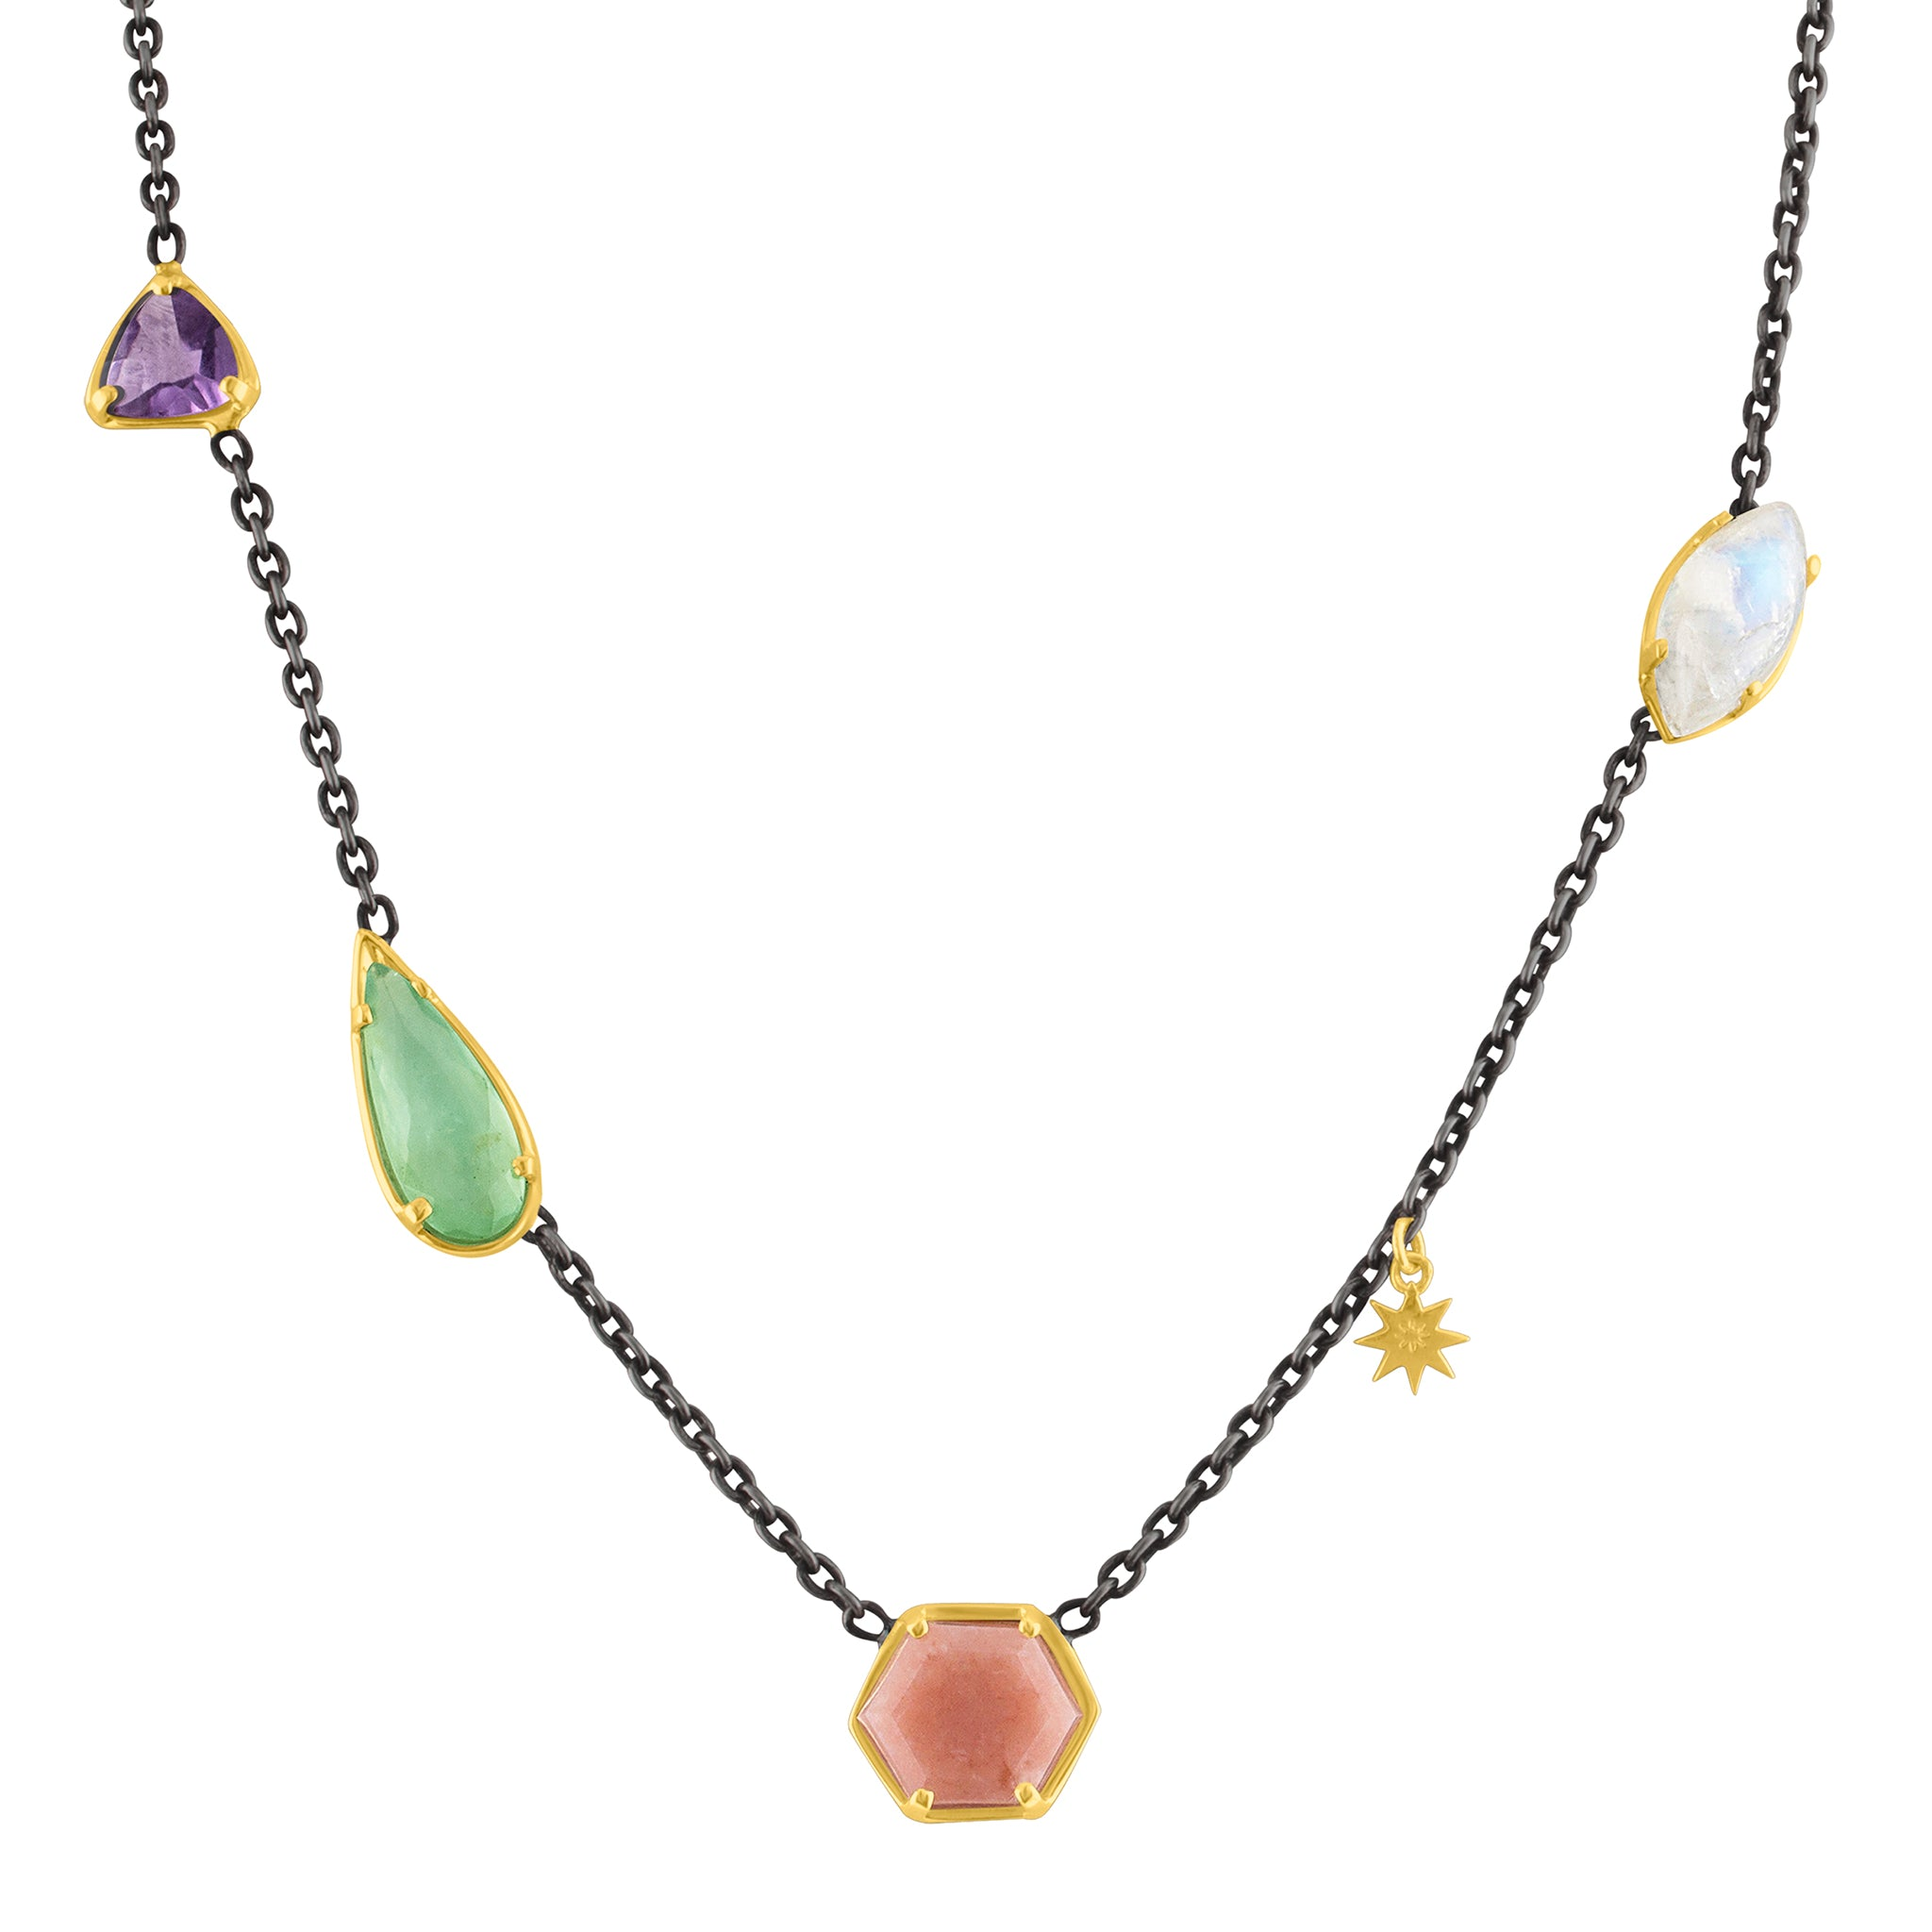 Hex Mix Stone Necklace: 14k Gold, Silver, Pink & Green Chalcedony, Amethyst, Moonstone